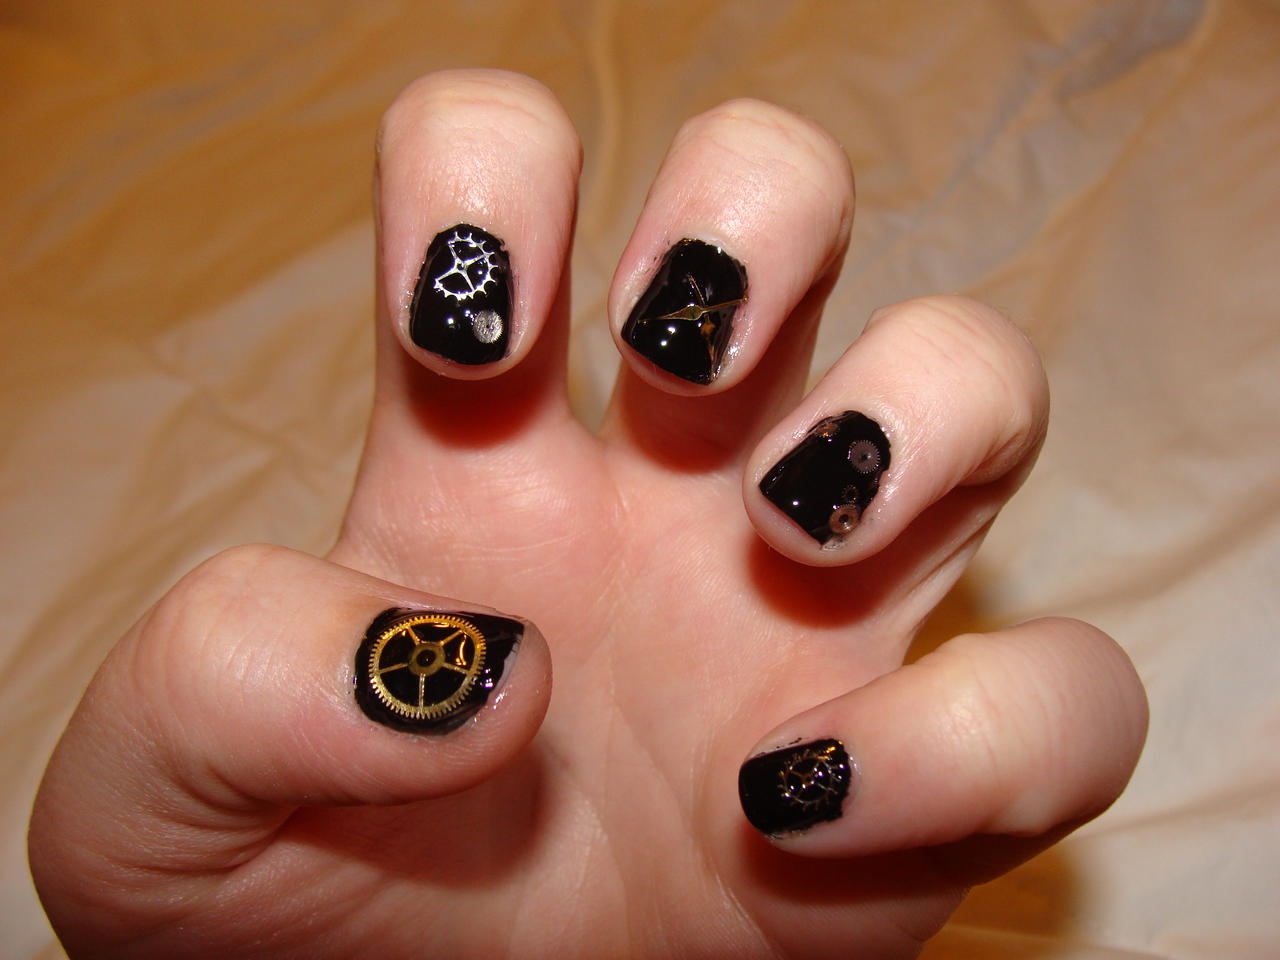 Steampunk nails do over 1 by april r on deviantart steampunk nails do over 1 by april r prinsesfo Images